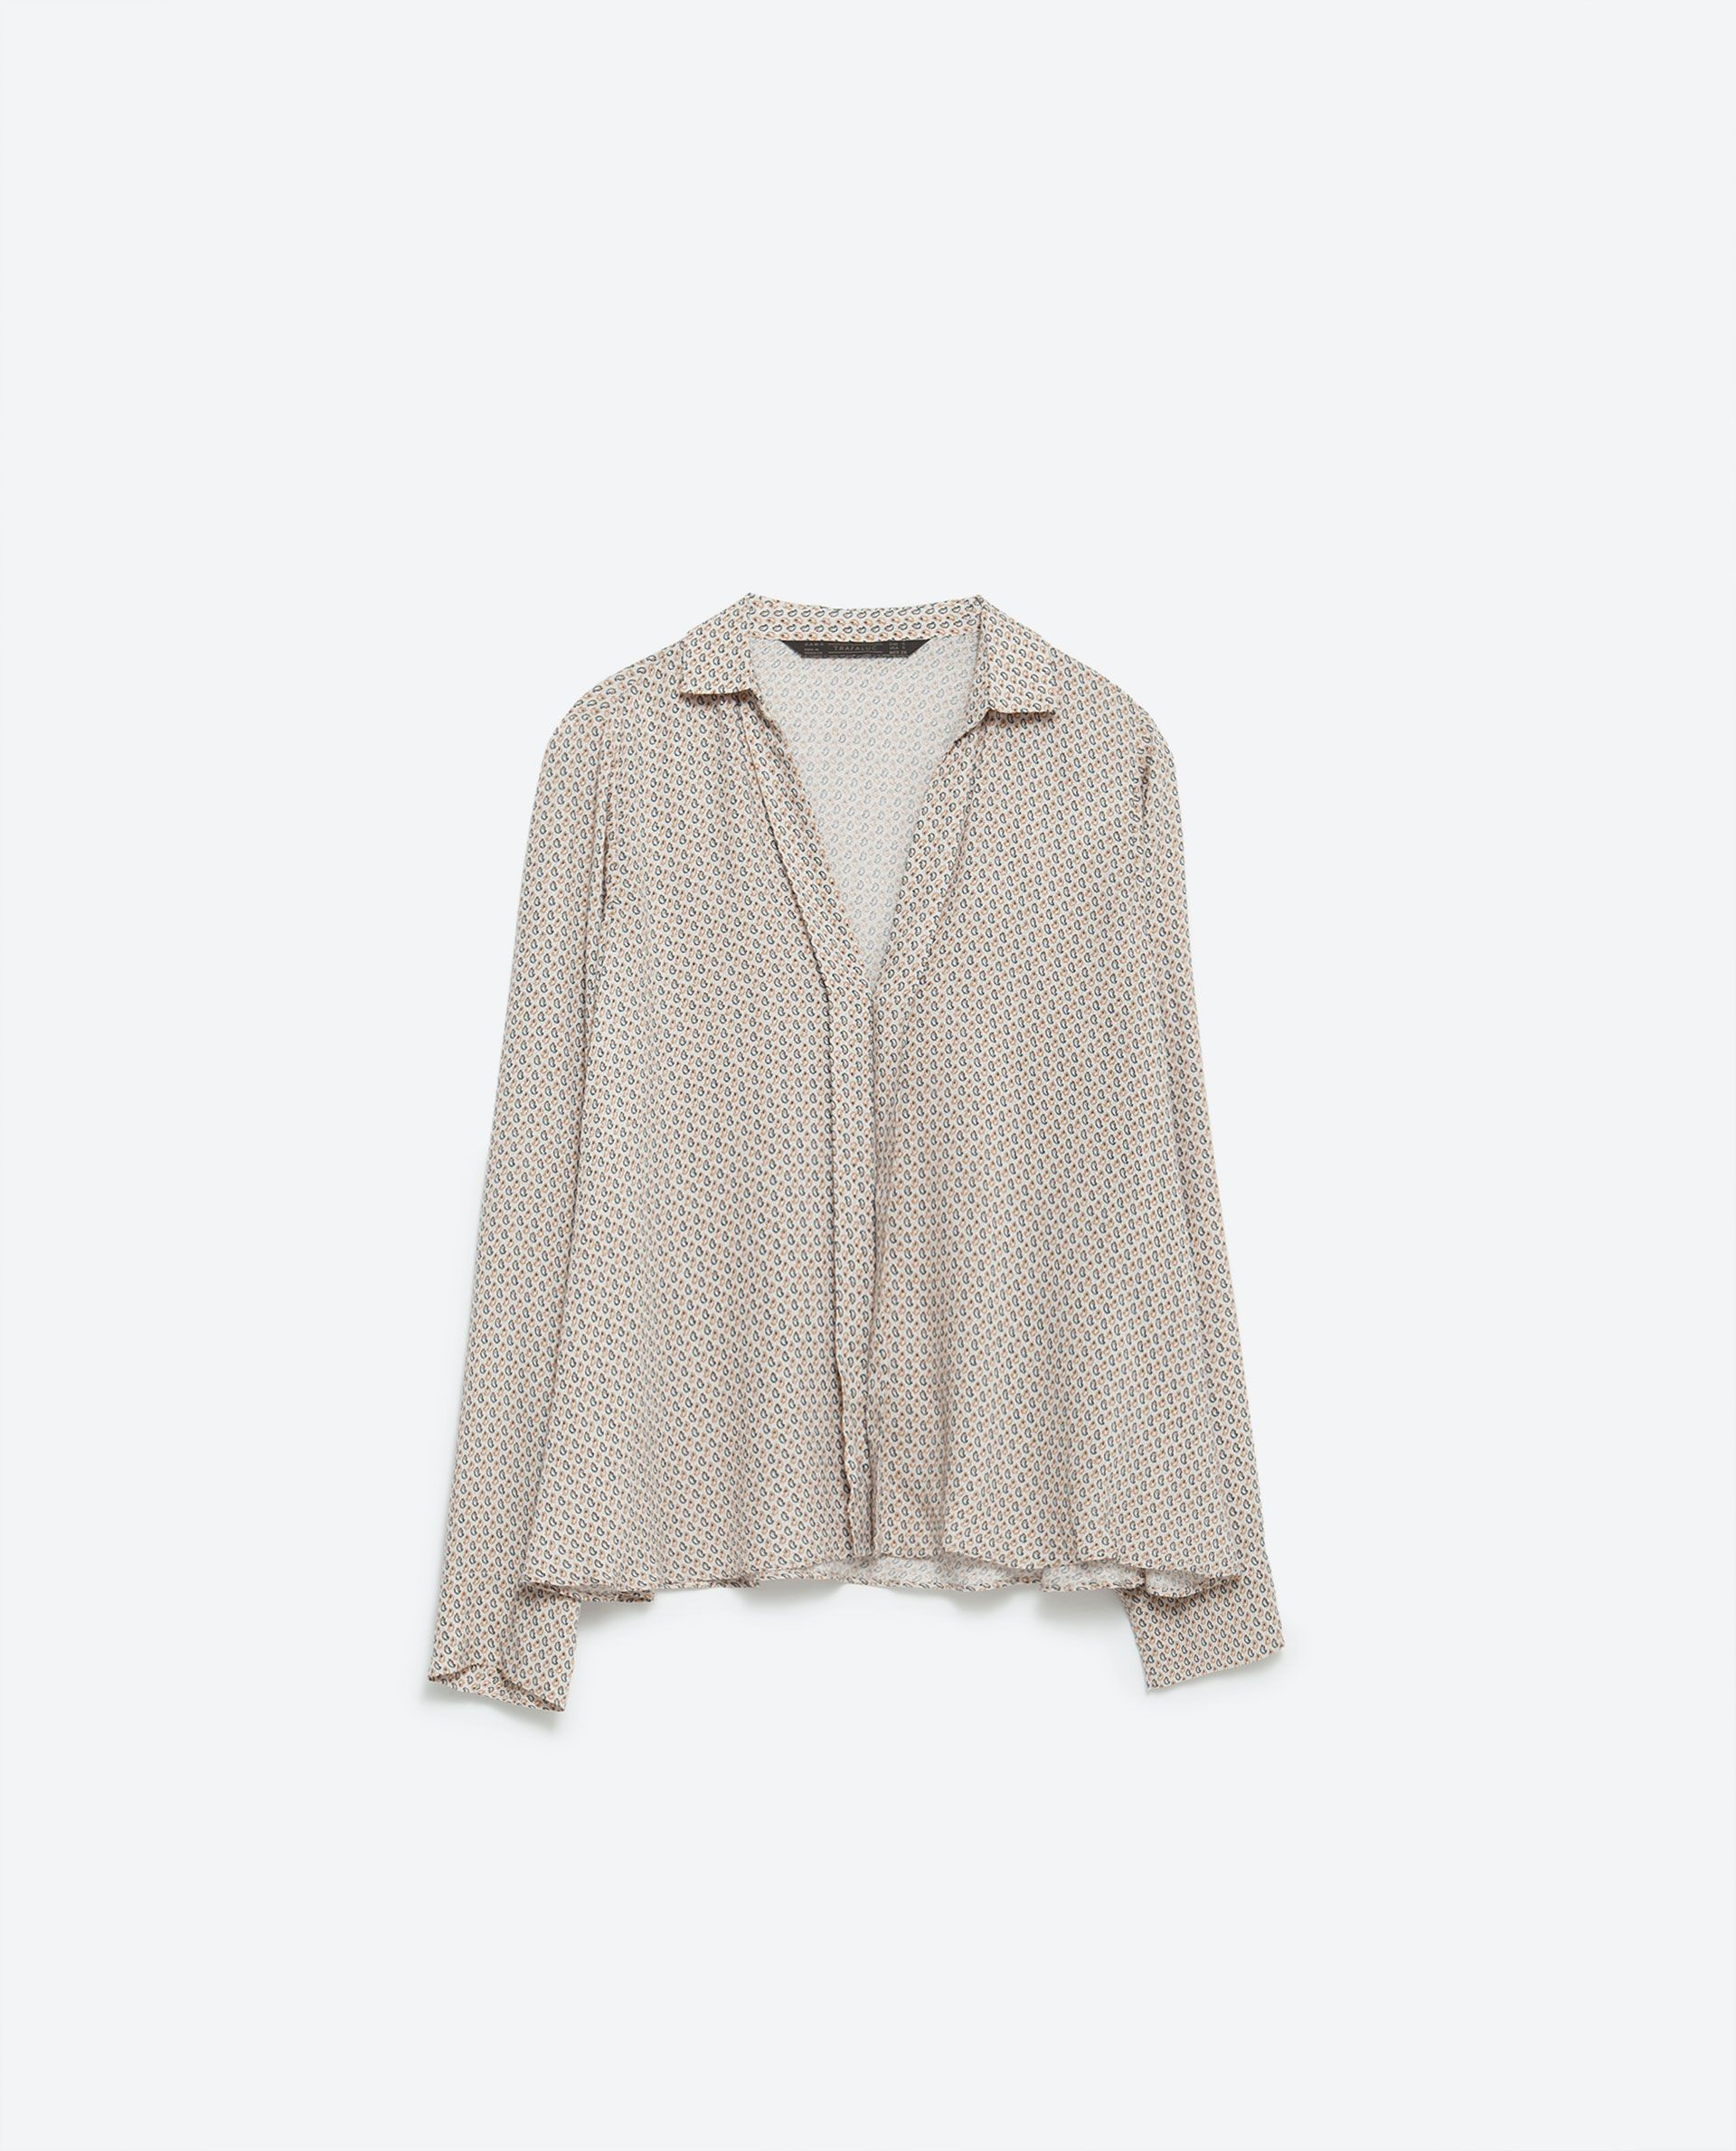 SHIRT WITH LAPEL - Tops - TRF   ZARA United States